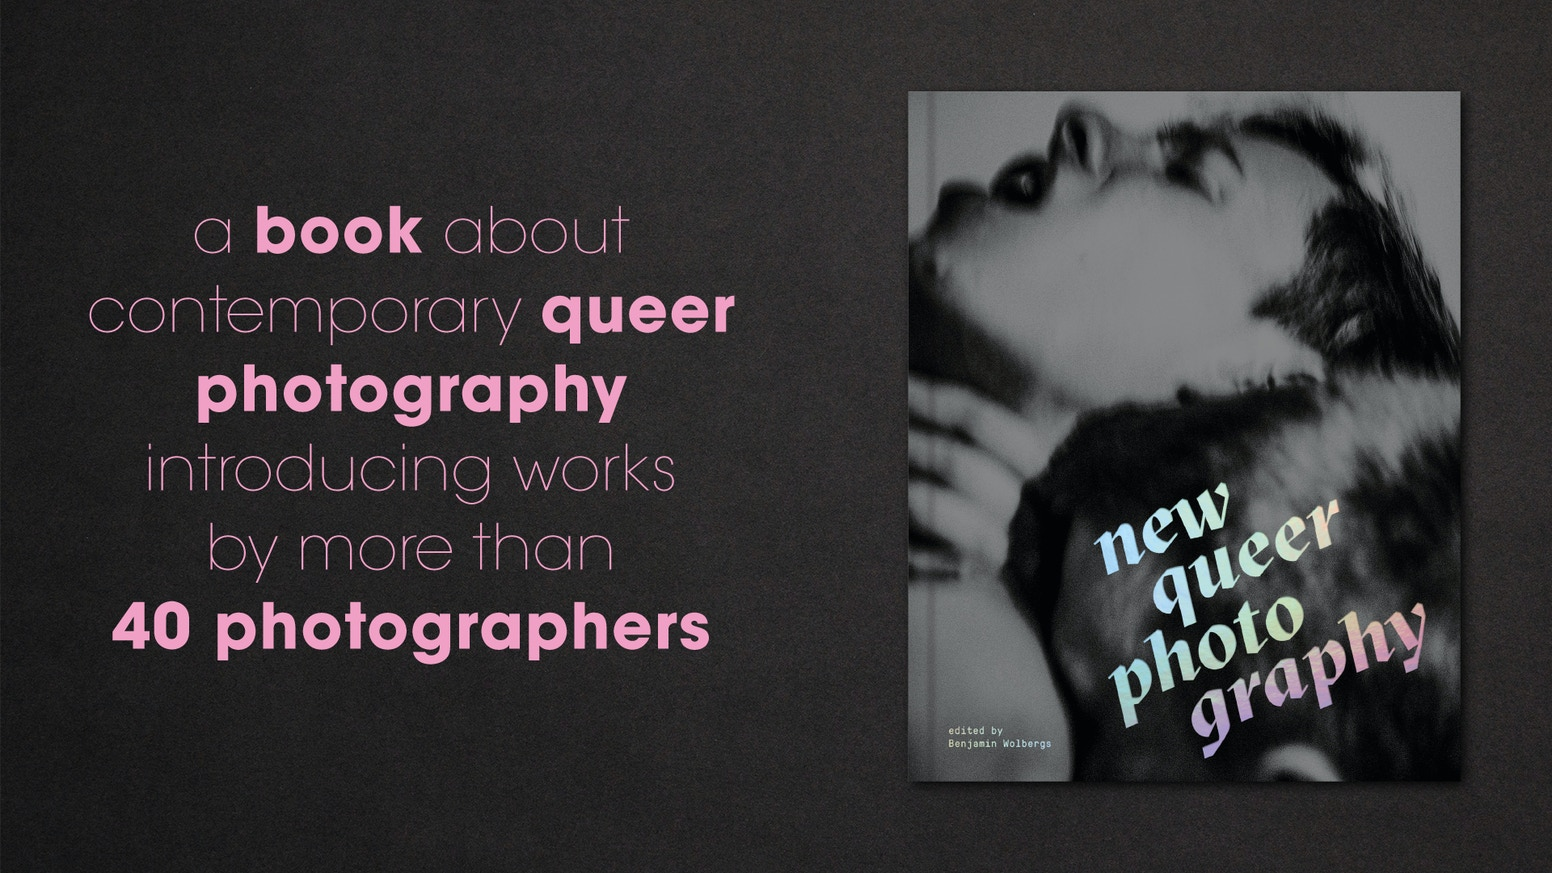 A book about contemporary queer photography introducing works by more than 40 photographers